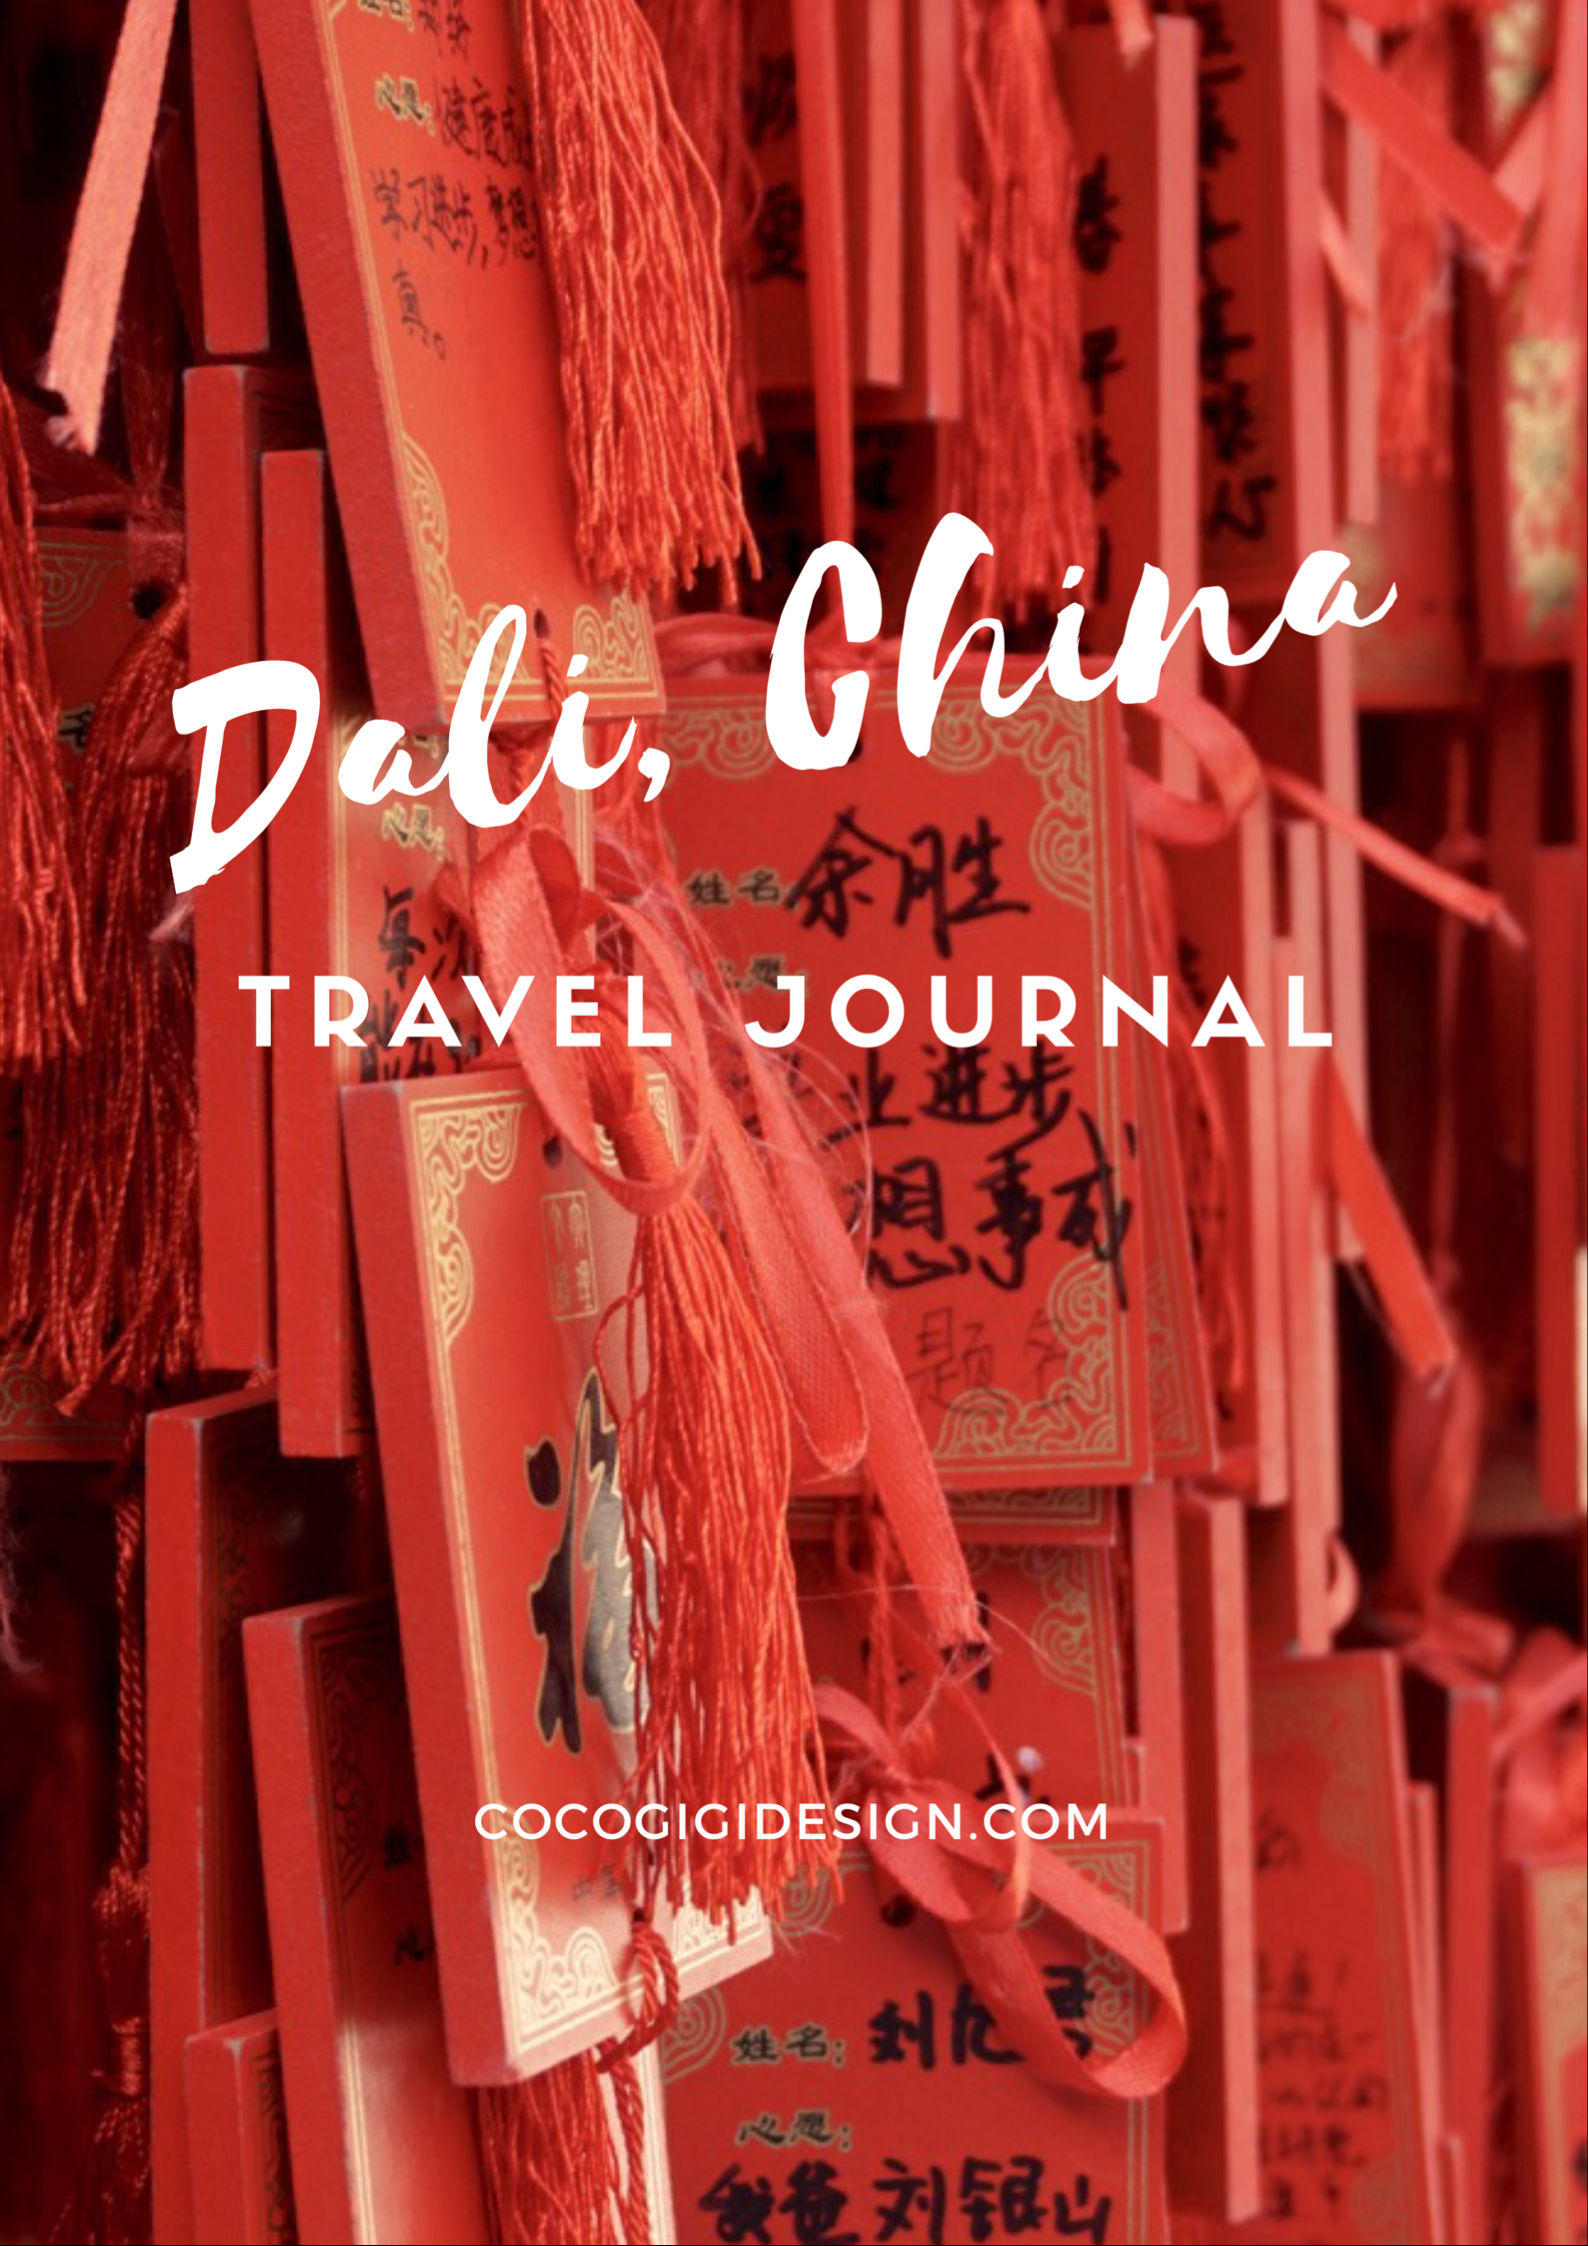 Gina Maldonado - Dali, China travel journal.PNG